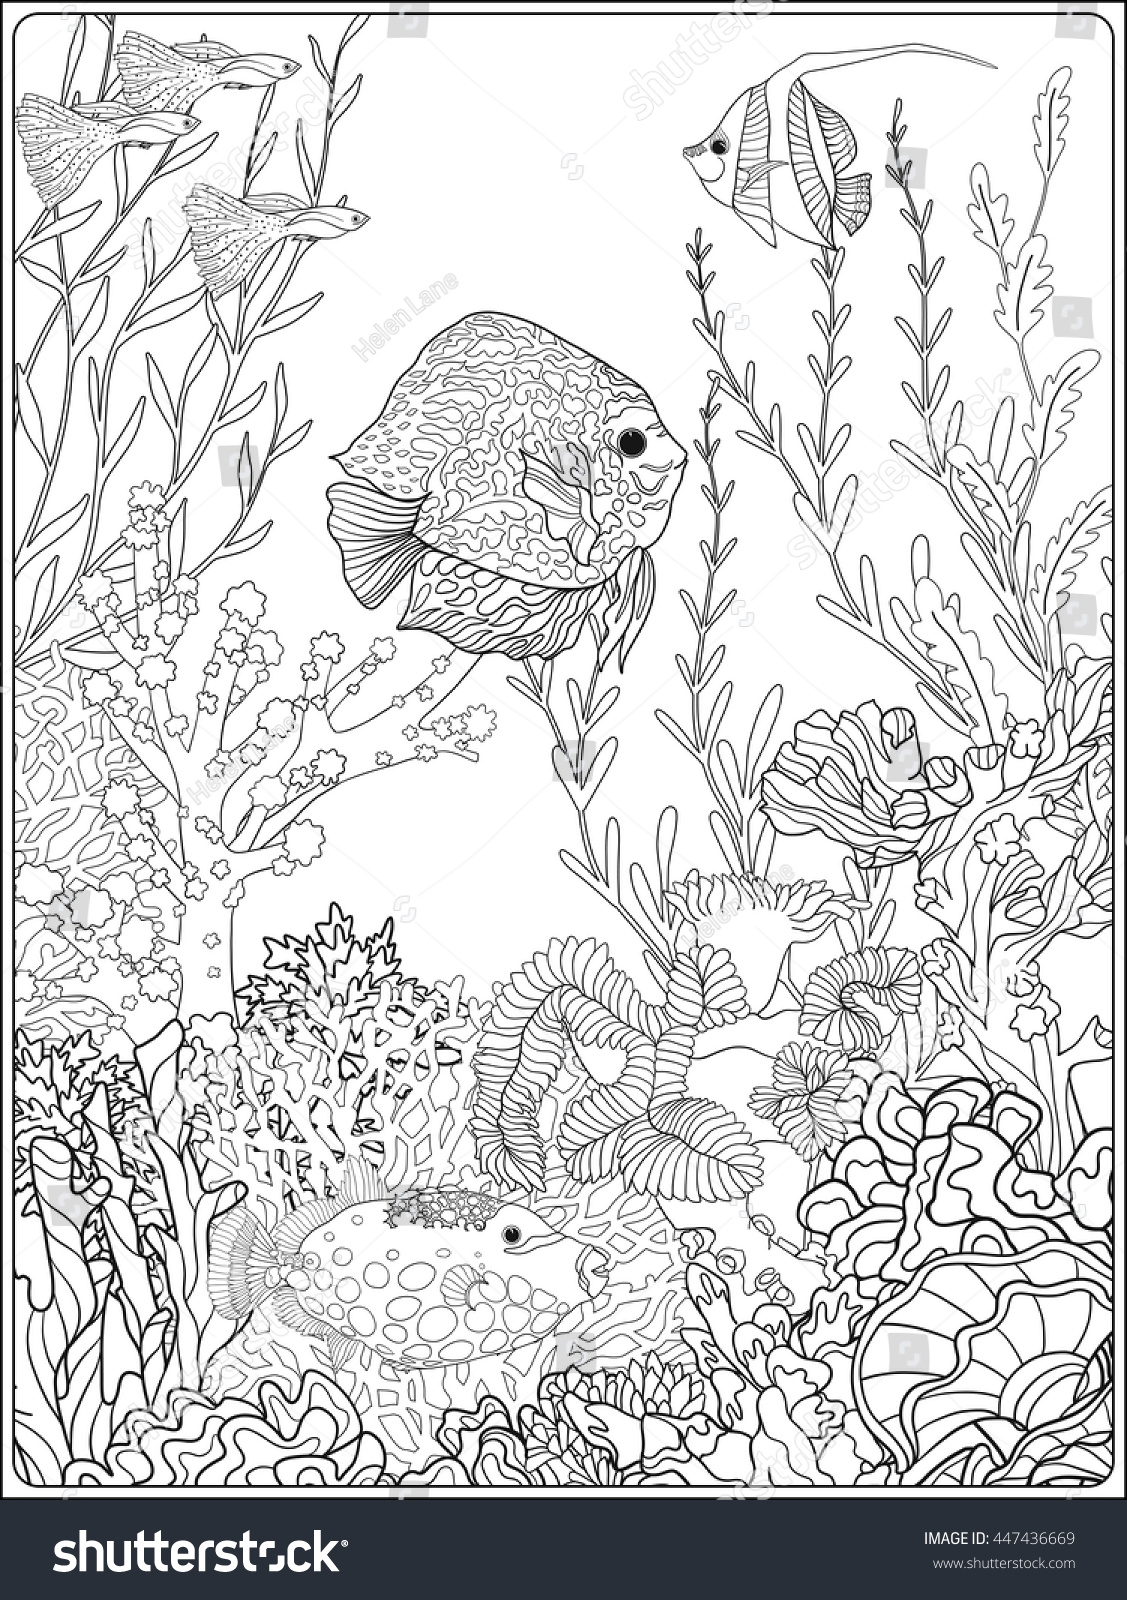 Adult Coloring Book Coloring Page With Underwater World